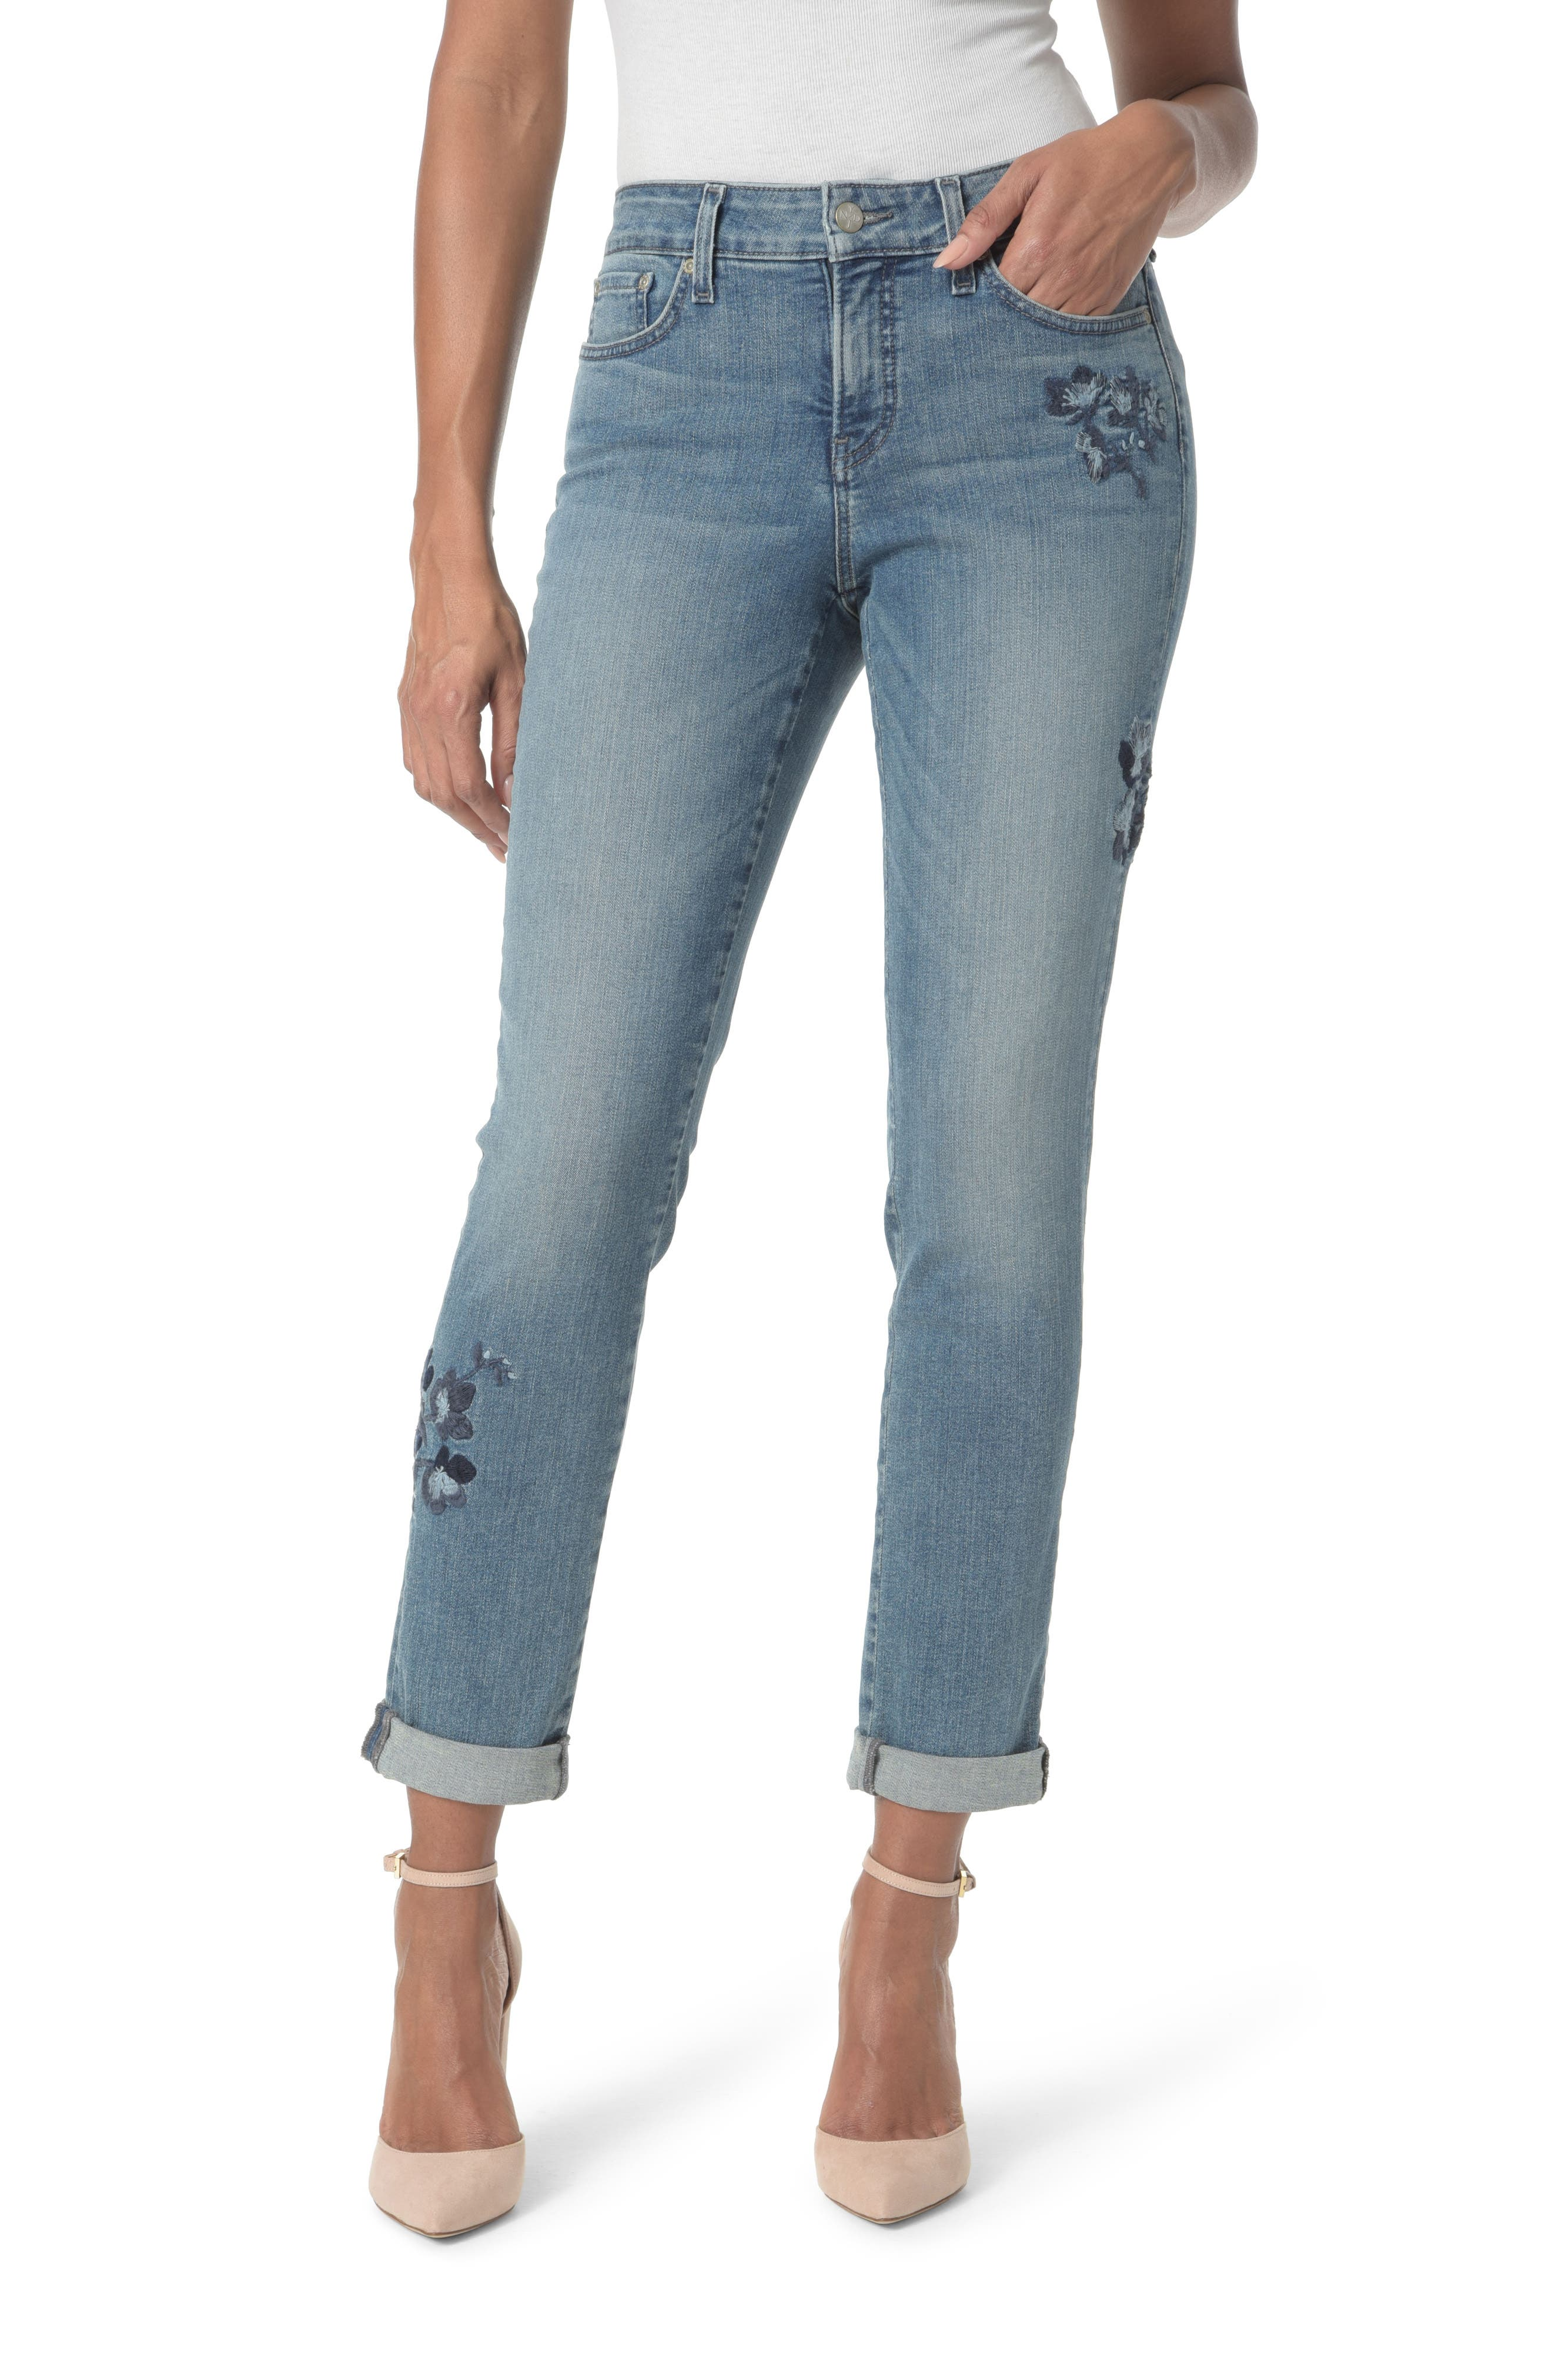 Alternate Image 1 Selected - NYDJ Embroidered Boyfriend Jeans (Pacific)